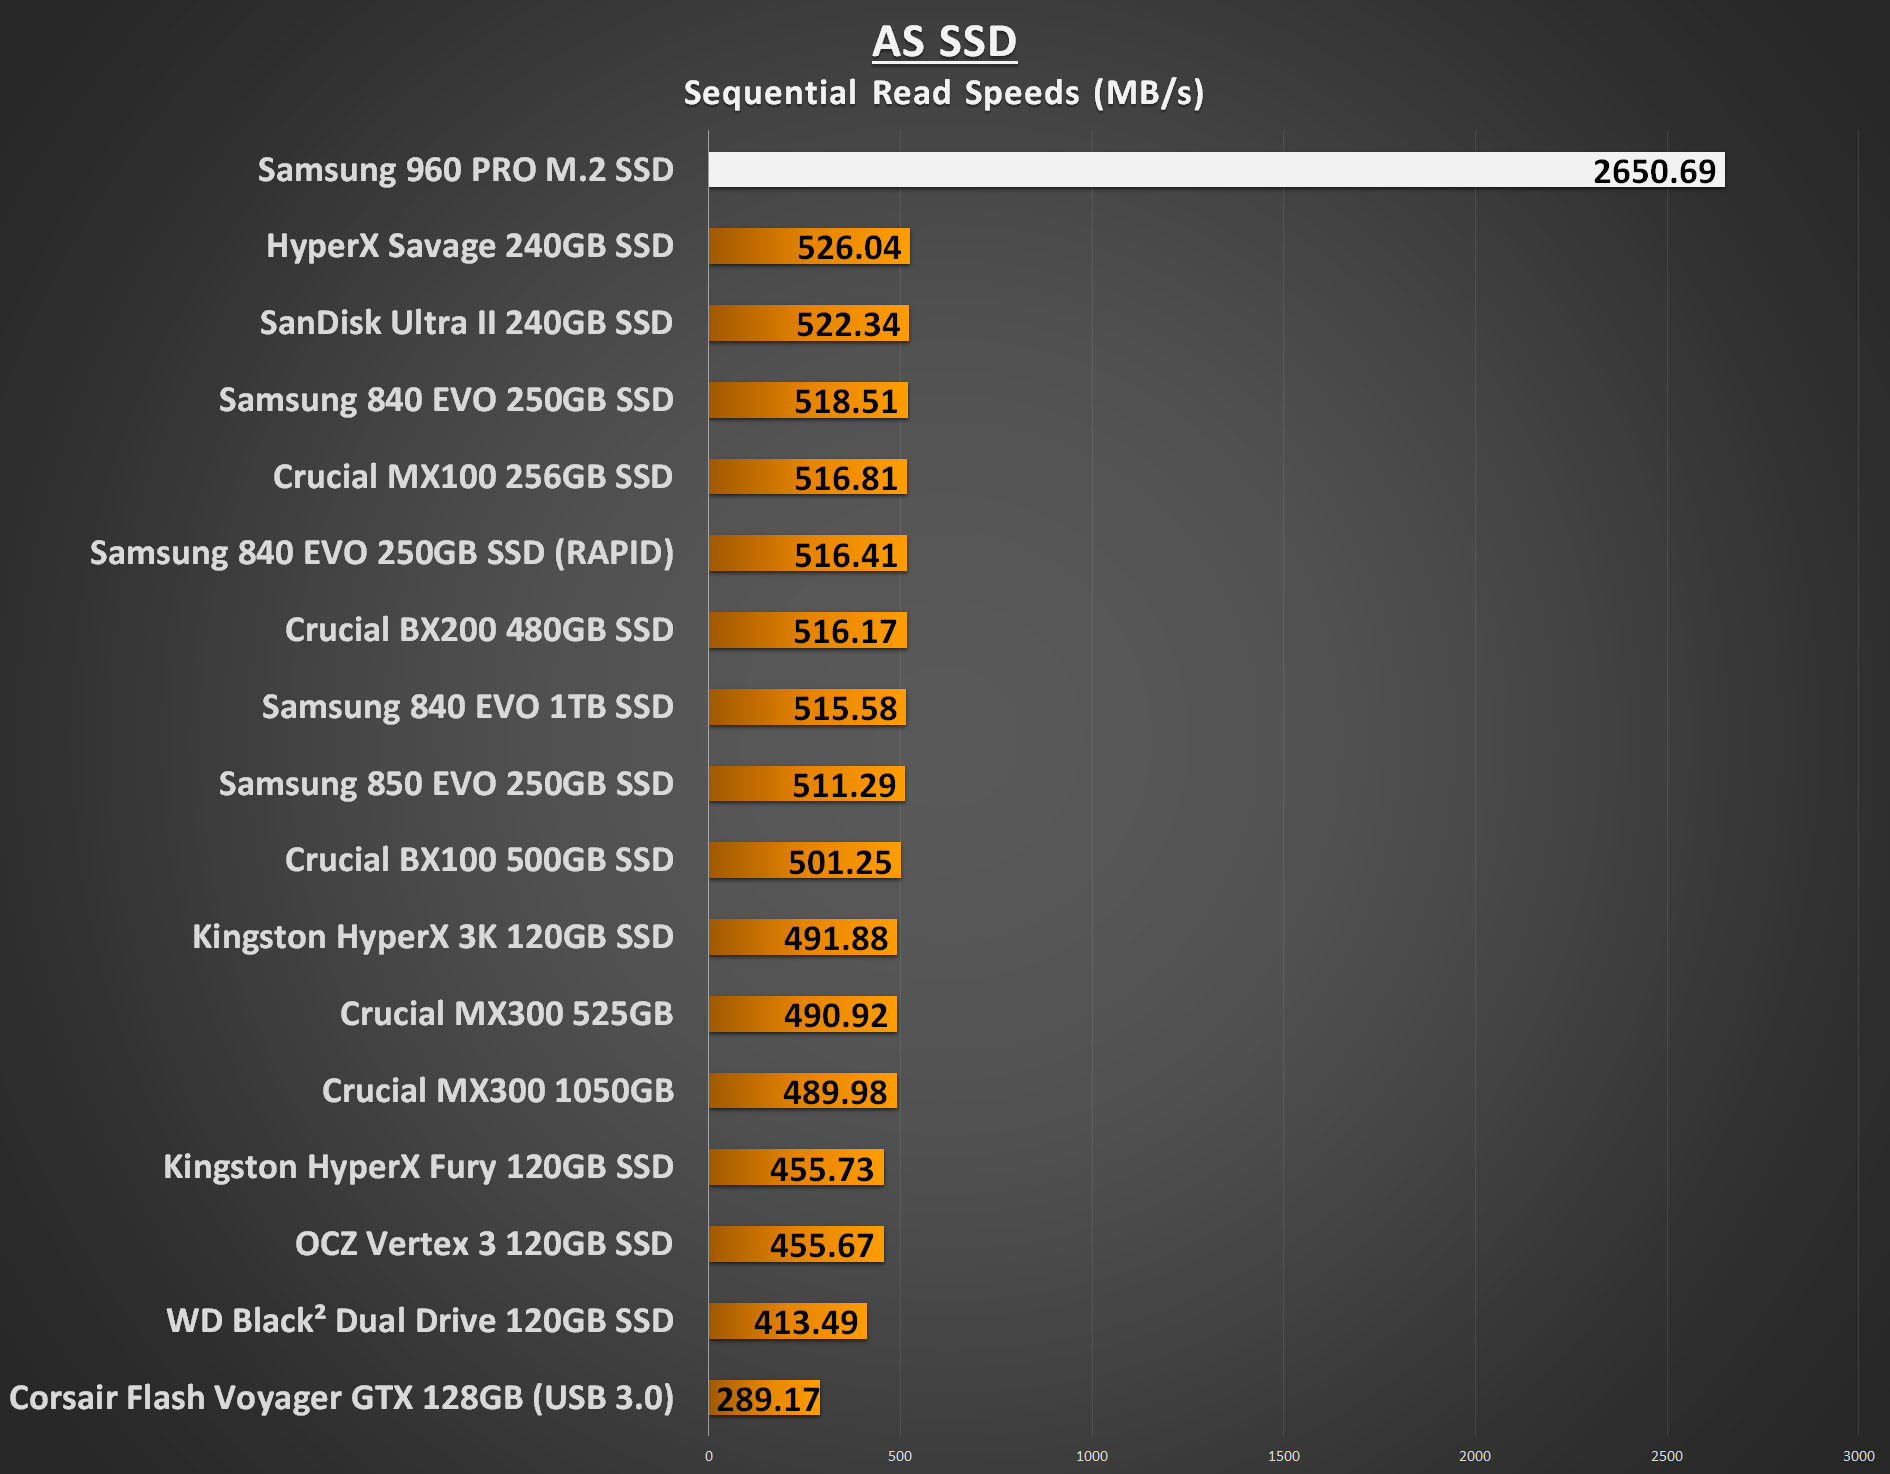 Samsung 960 PRO 1TB Performance - AS SSD Sequential Read